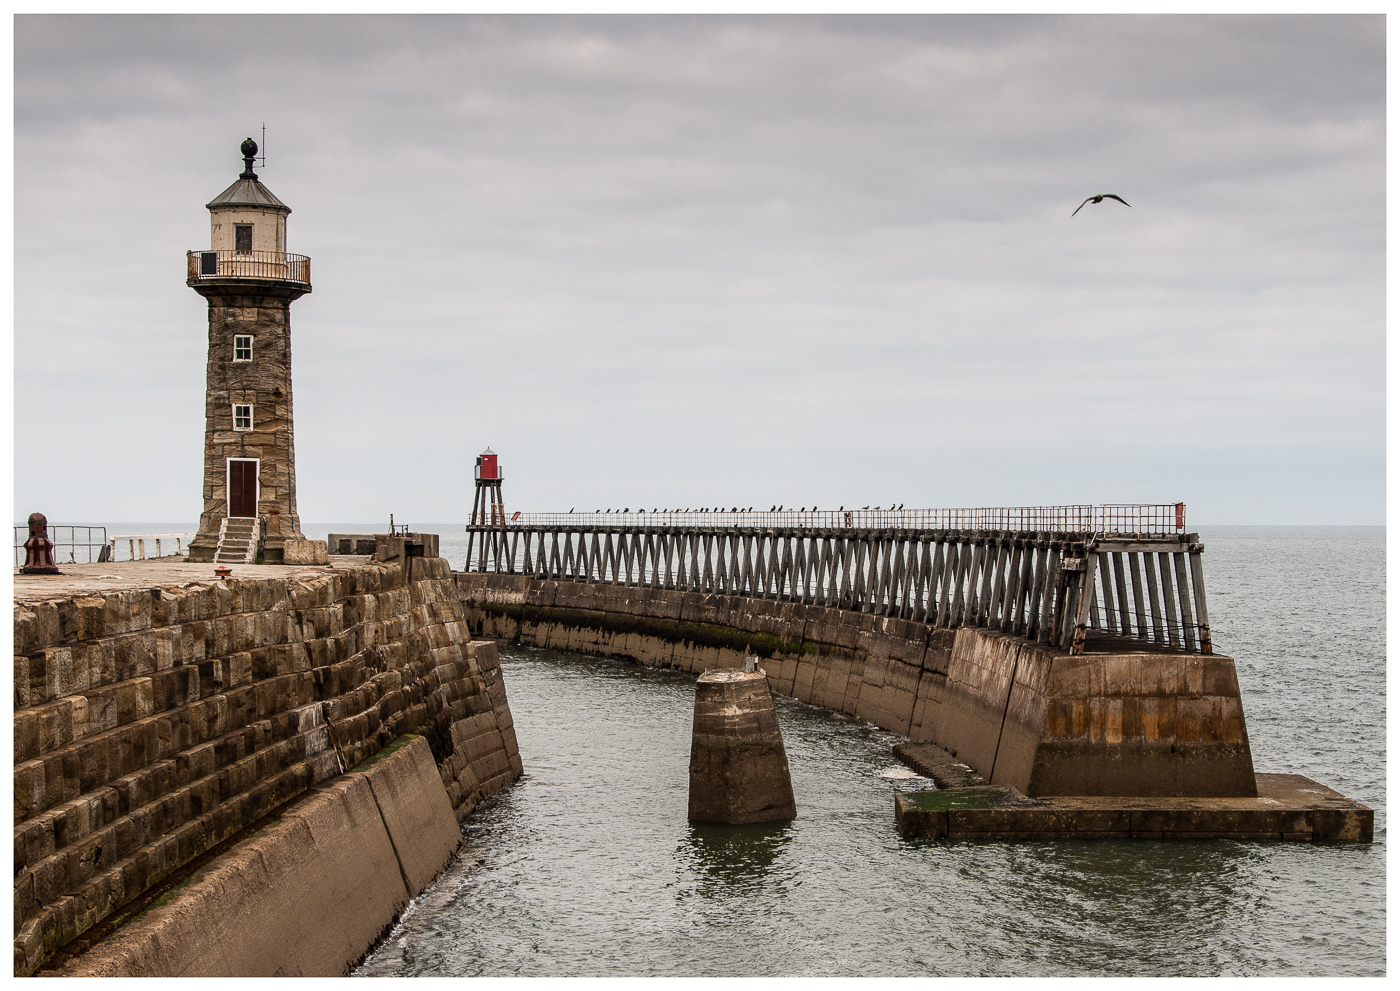 East Pier, Whitby